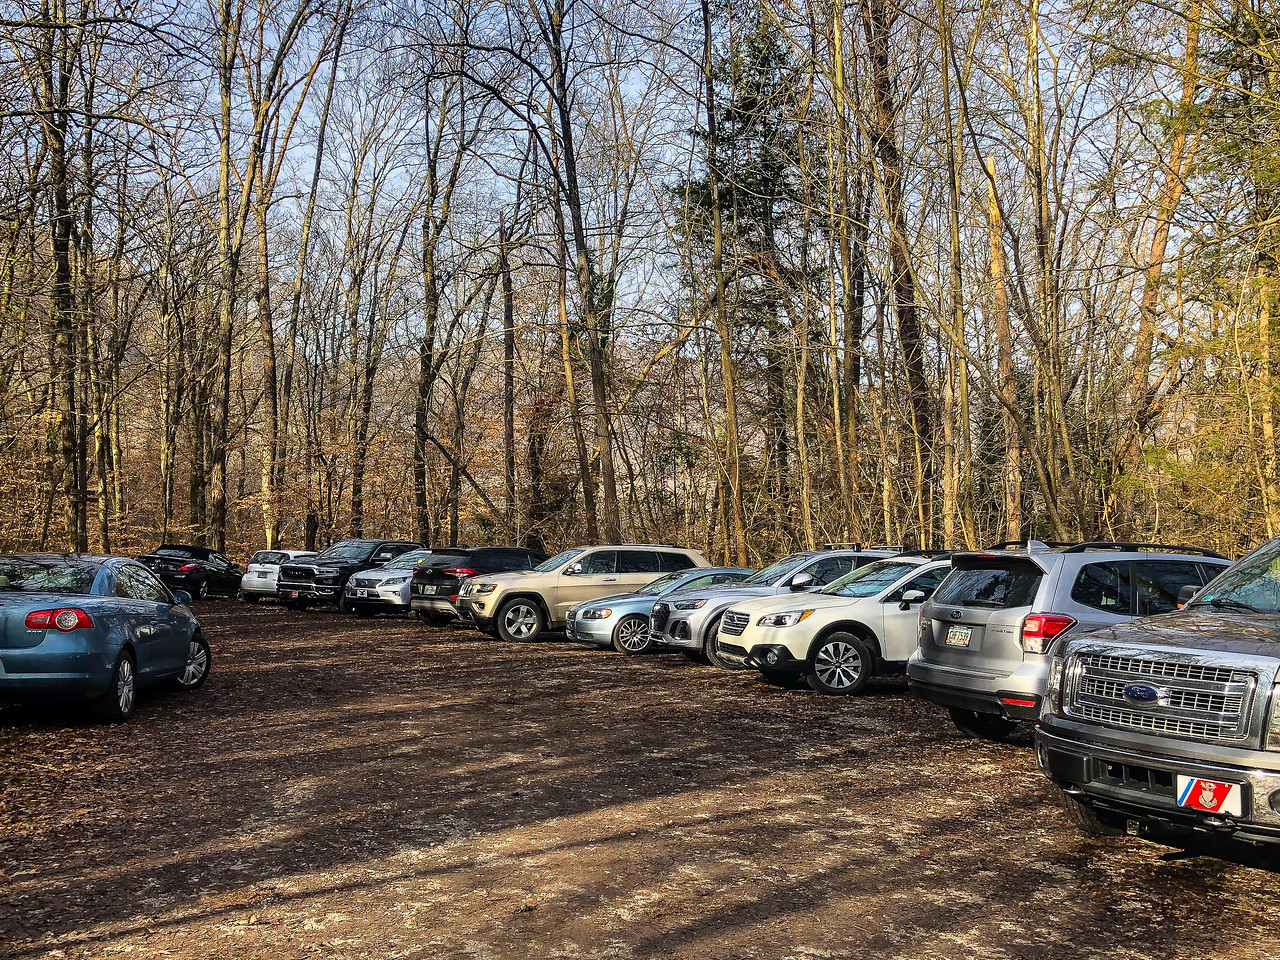 A parking area at the trailhead.